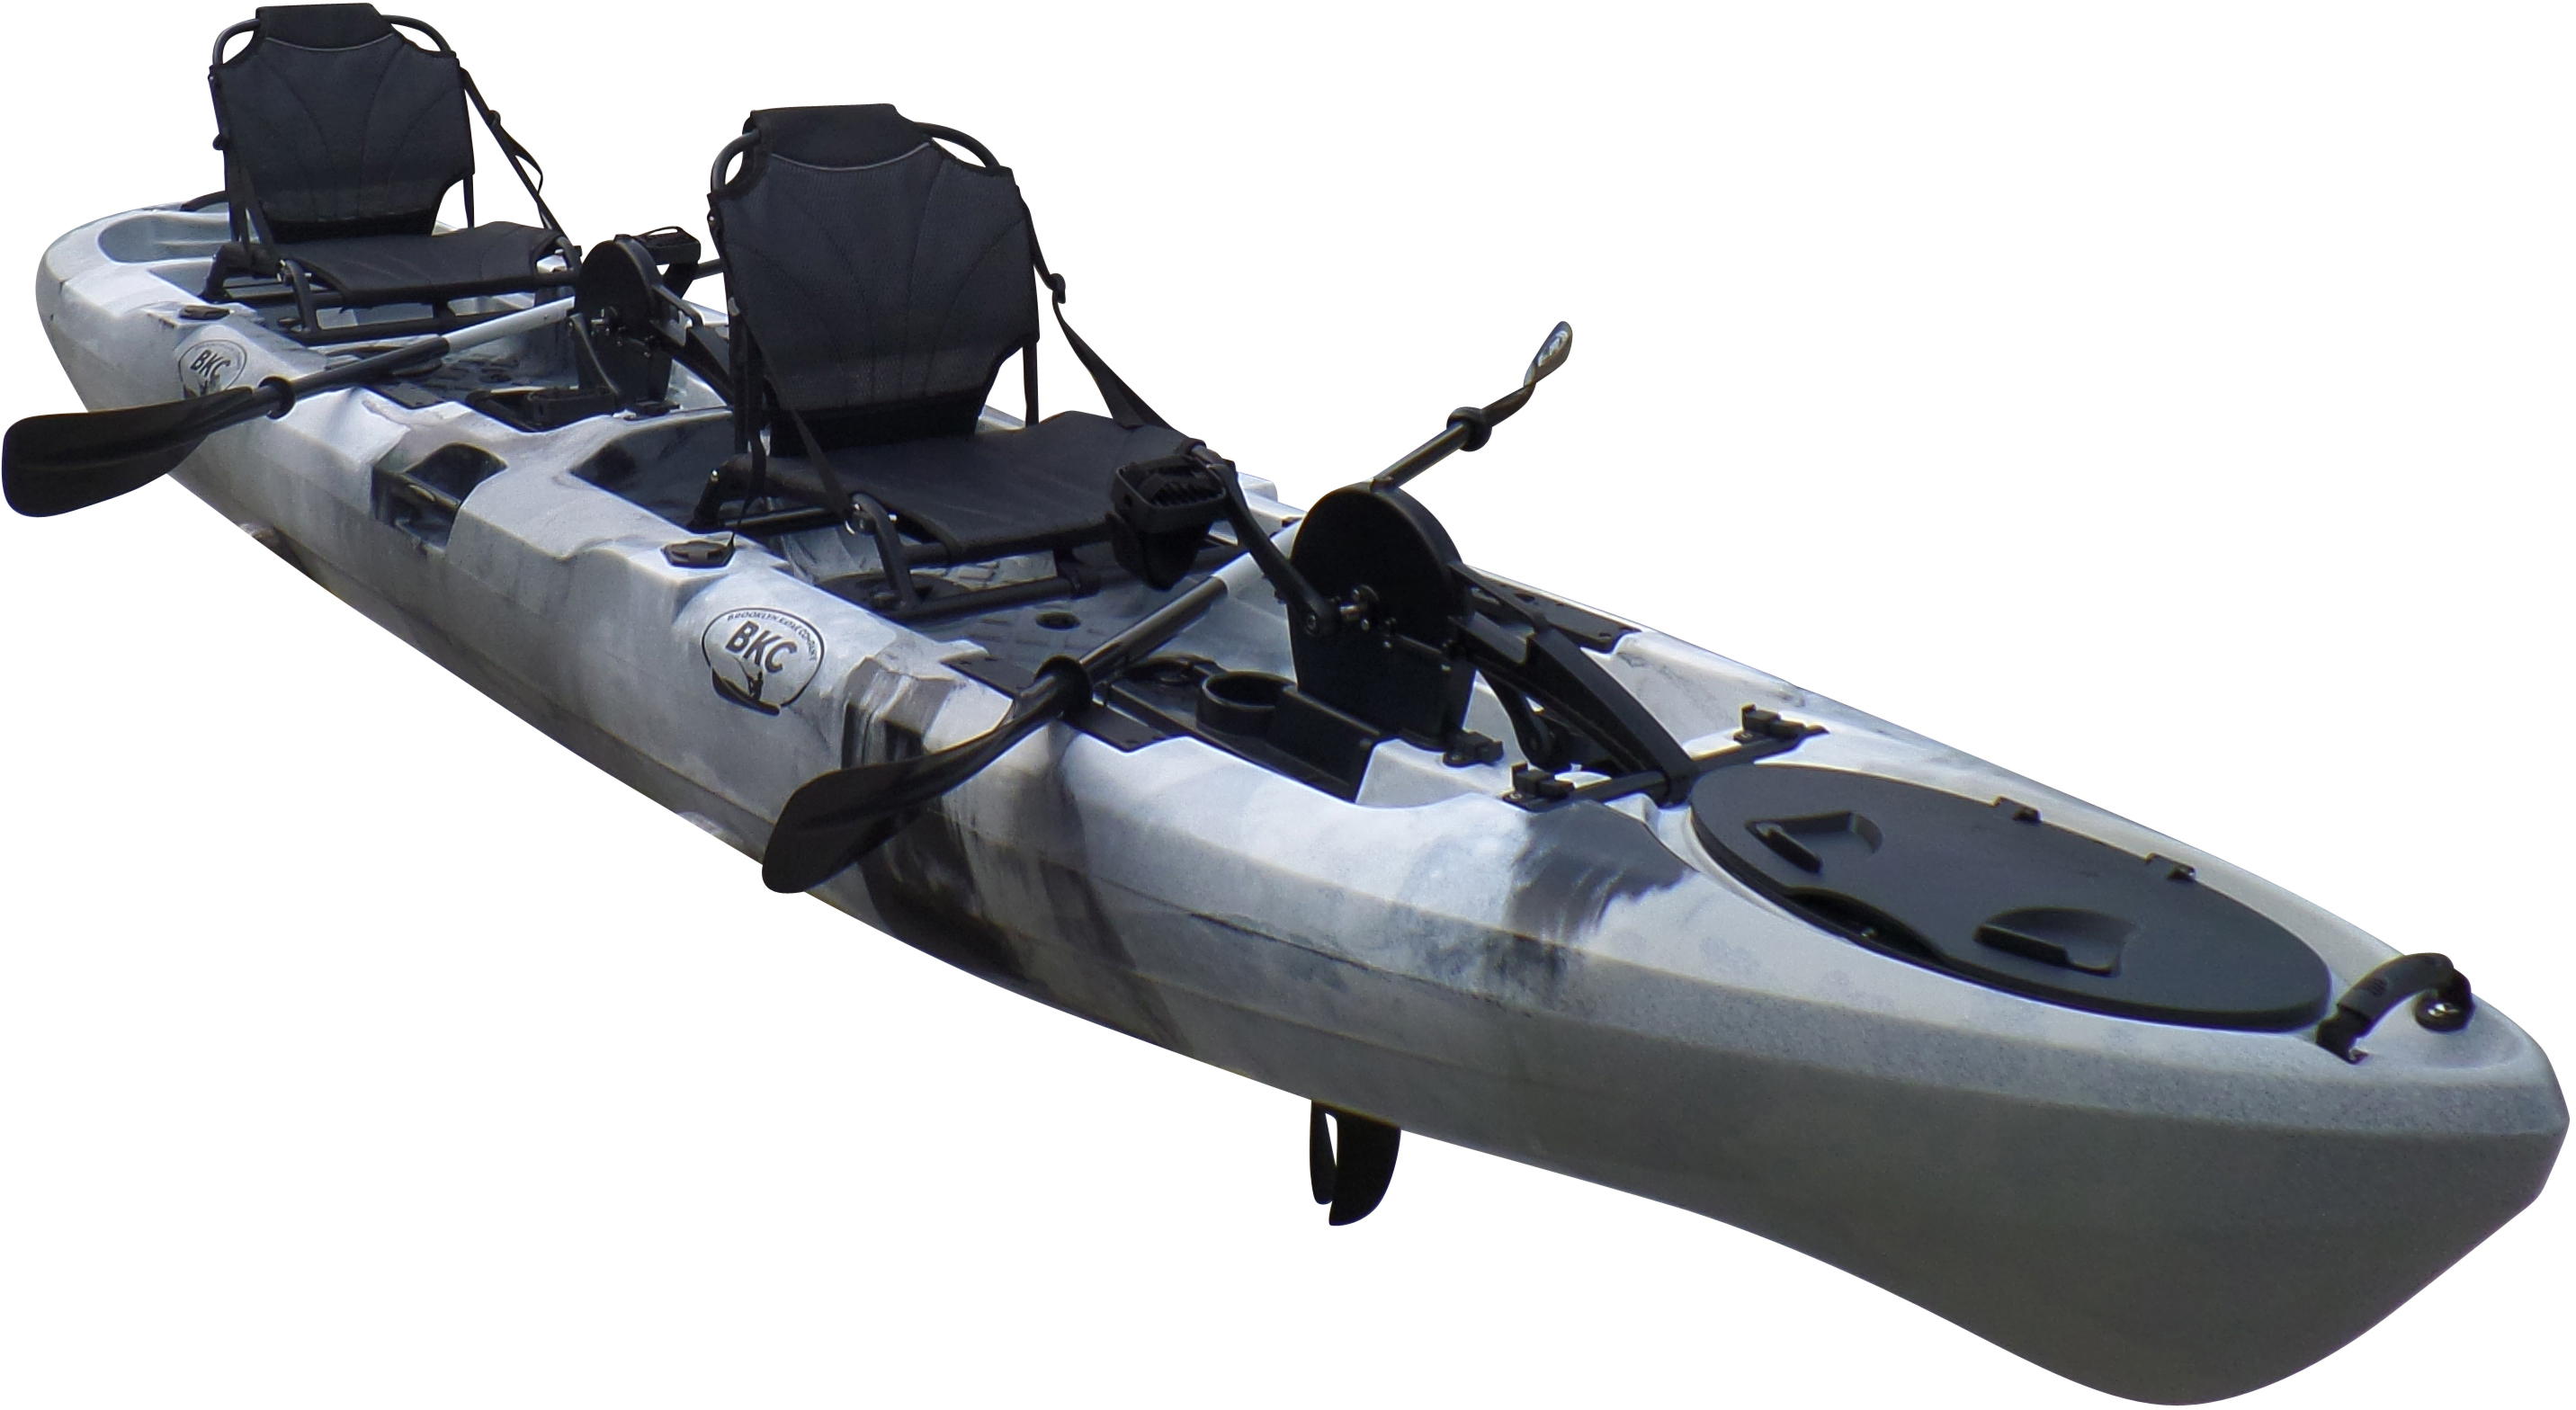 Brooklyn Kayak UH-PK14-GRY 14 ft. Sit on Top Tandem Fishing Pedal Drive Kayak Upright Seats Included - Grey